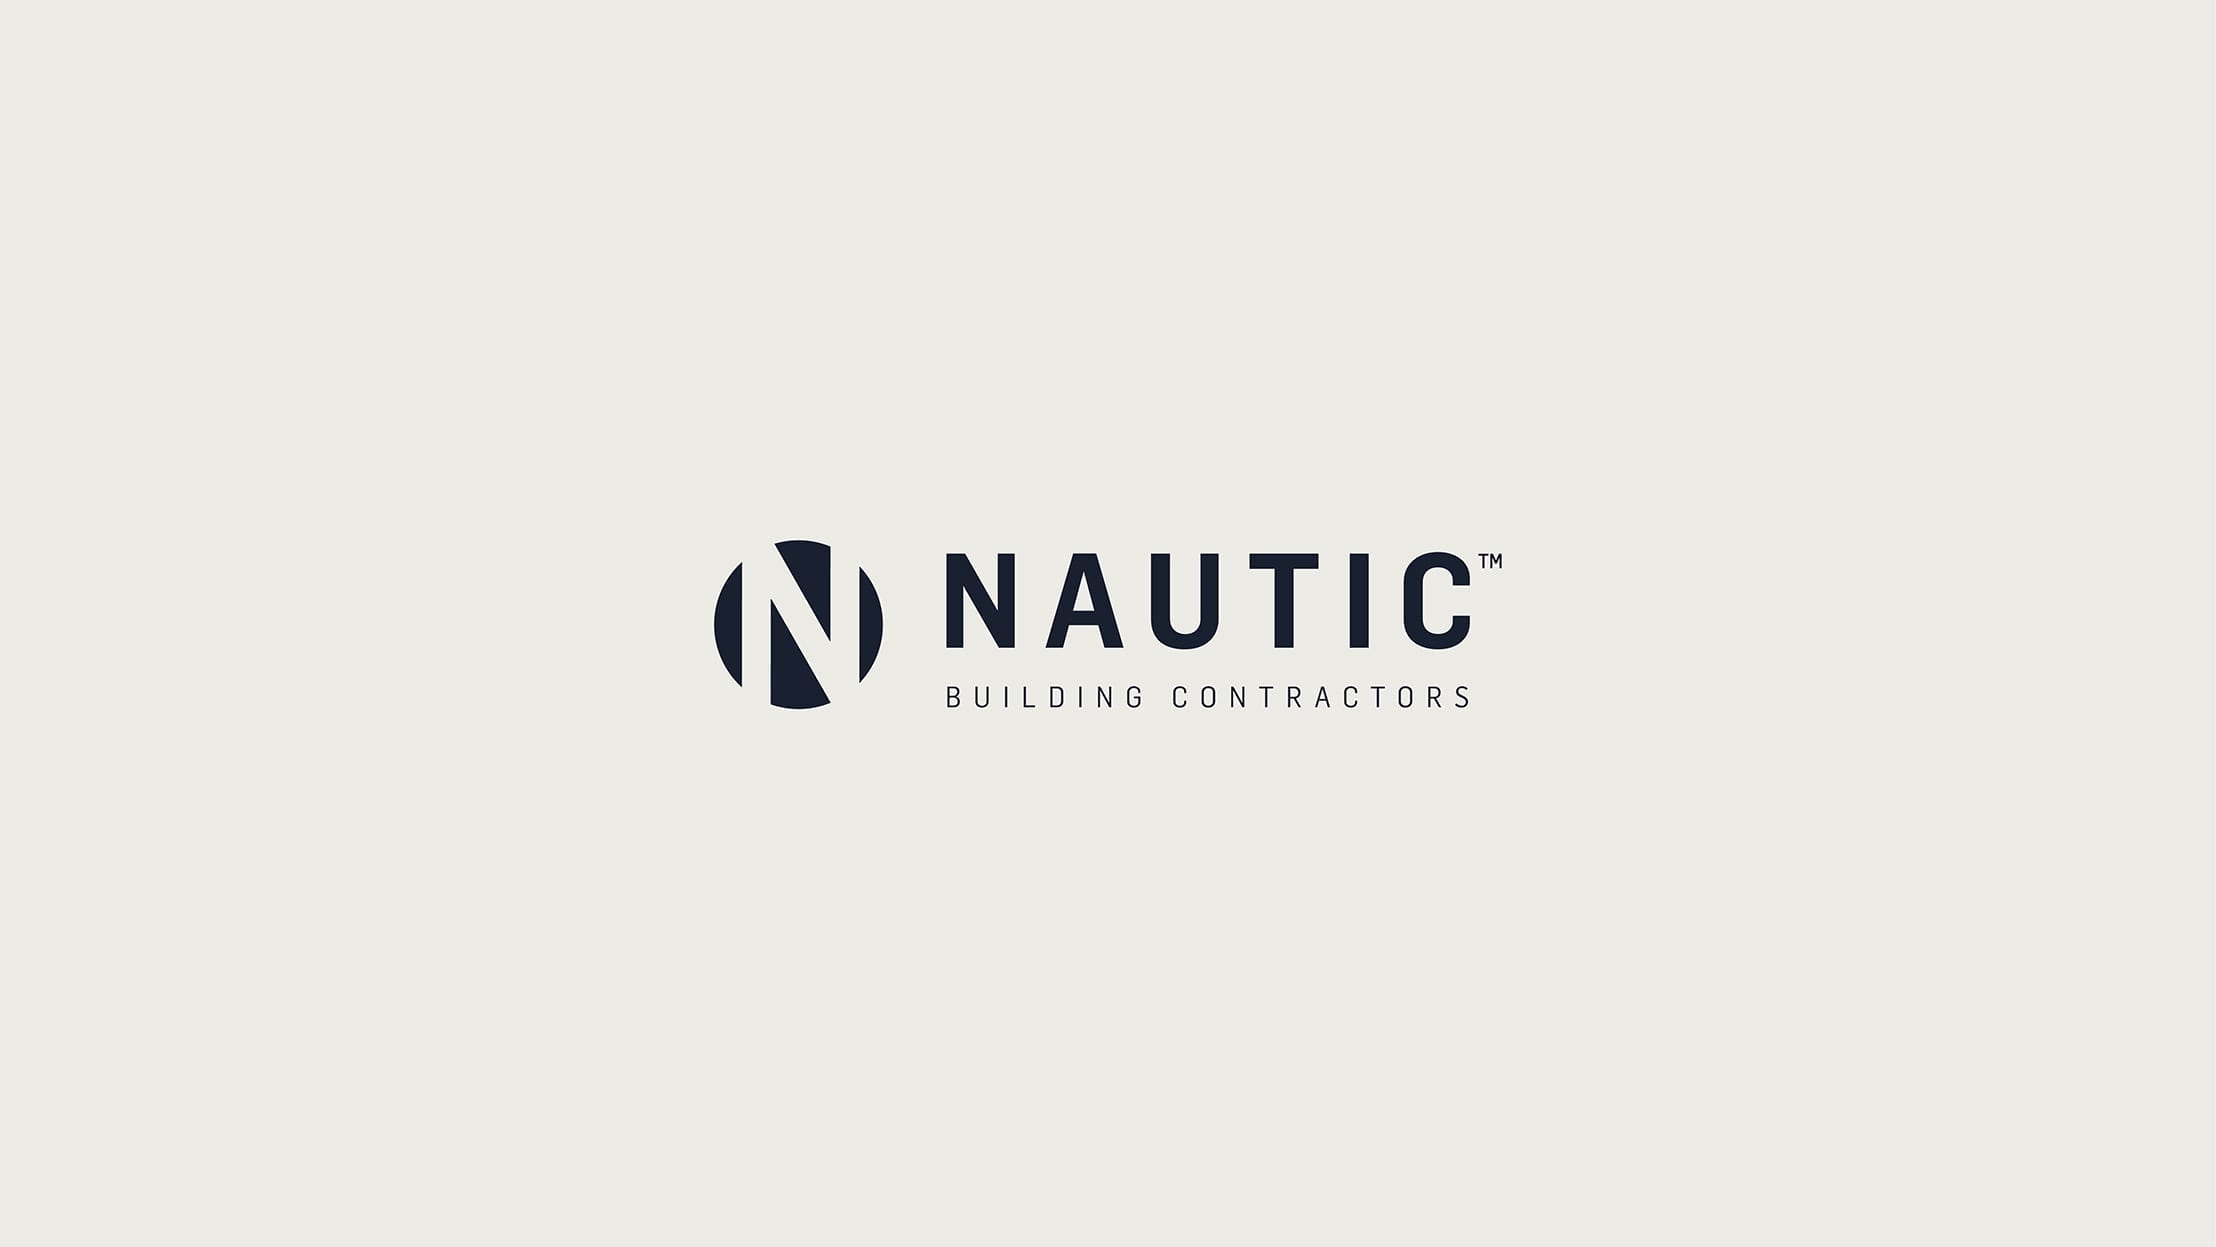 Nautic Building Contractors